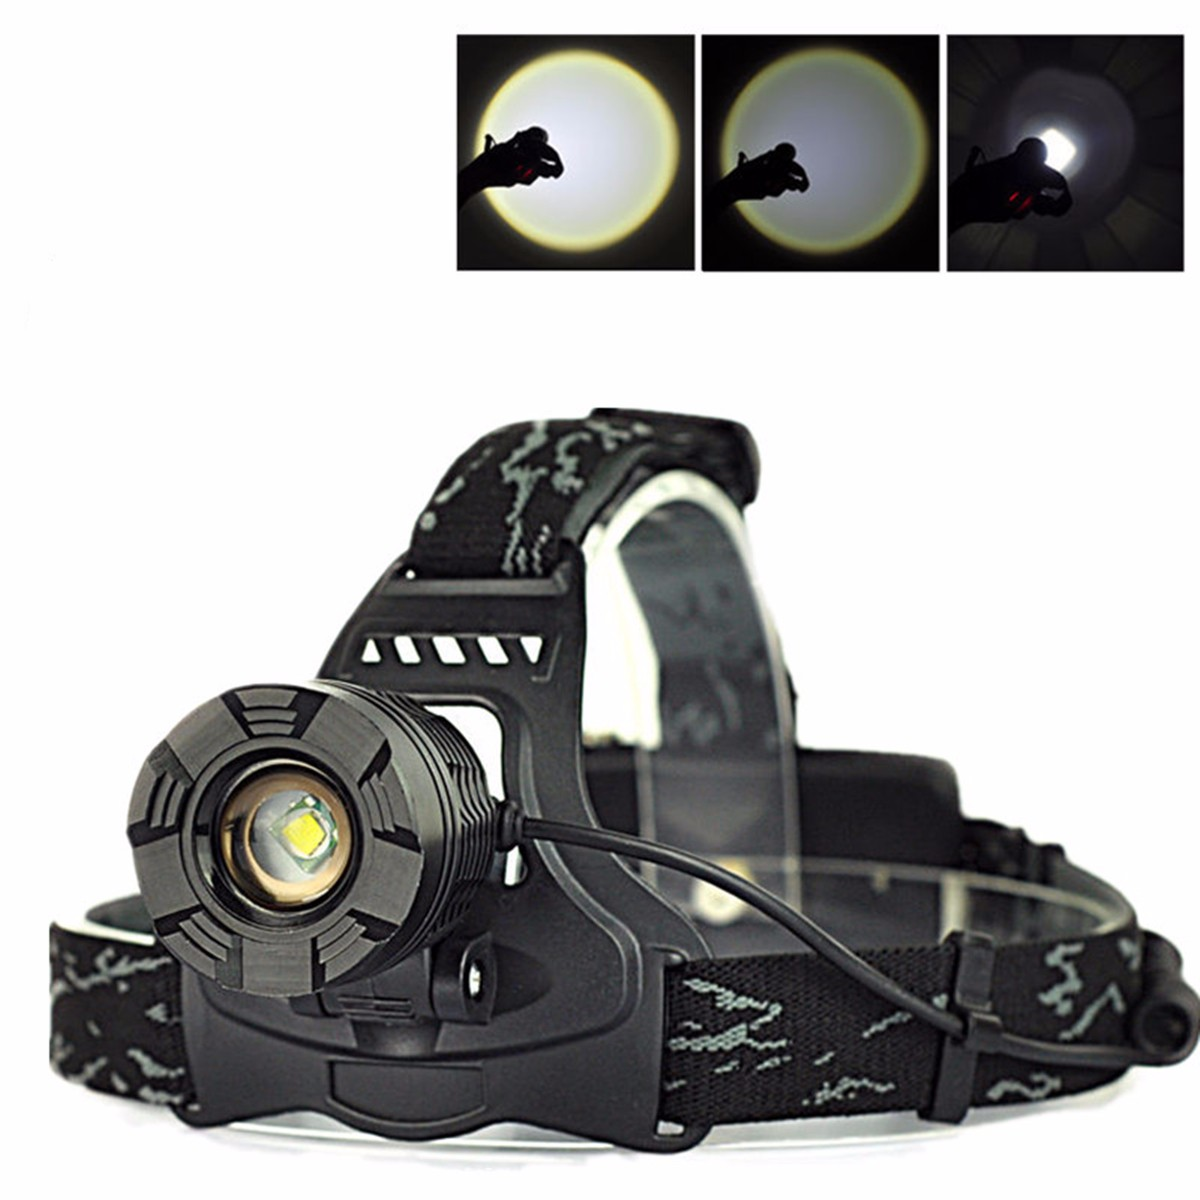 Elfeland 3500 Lumen T6 LED Headlights &amp Zoomble Rechargeable Headlight Headlamp Flashlight Torch Waterproof 3 Modes For Hiking Camping Riding Fishing